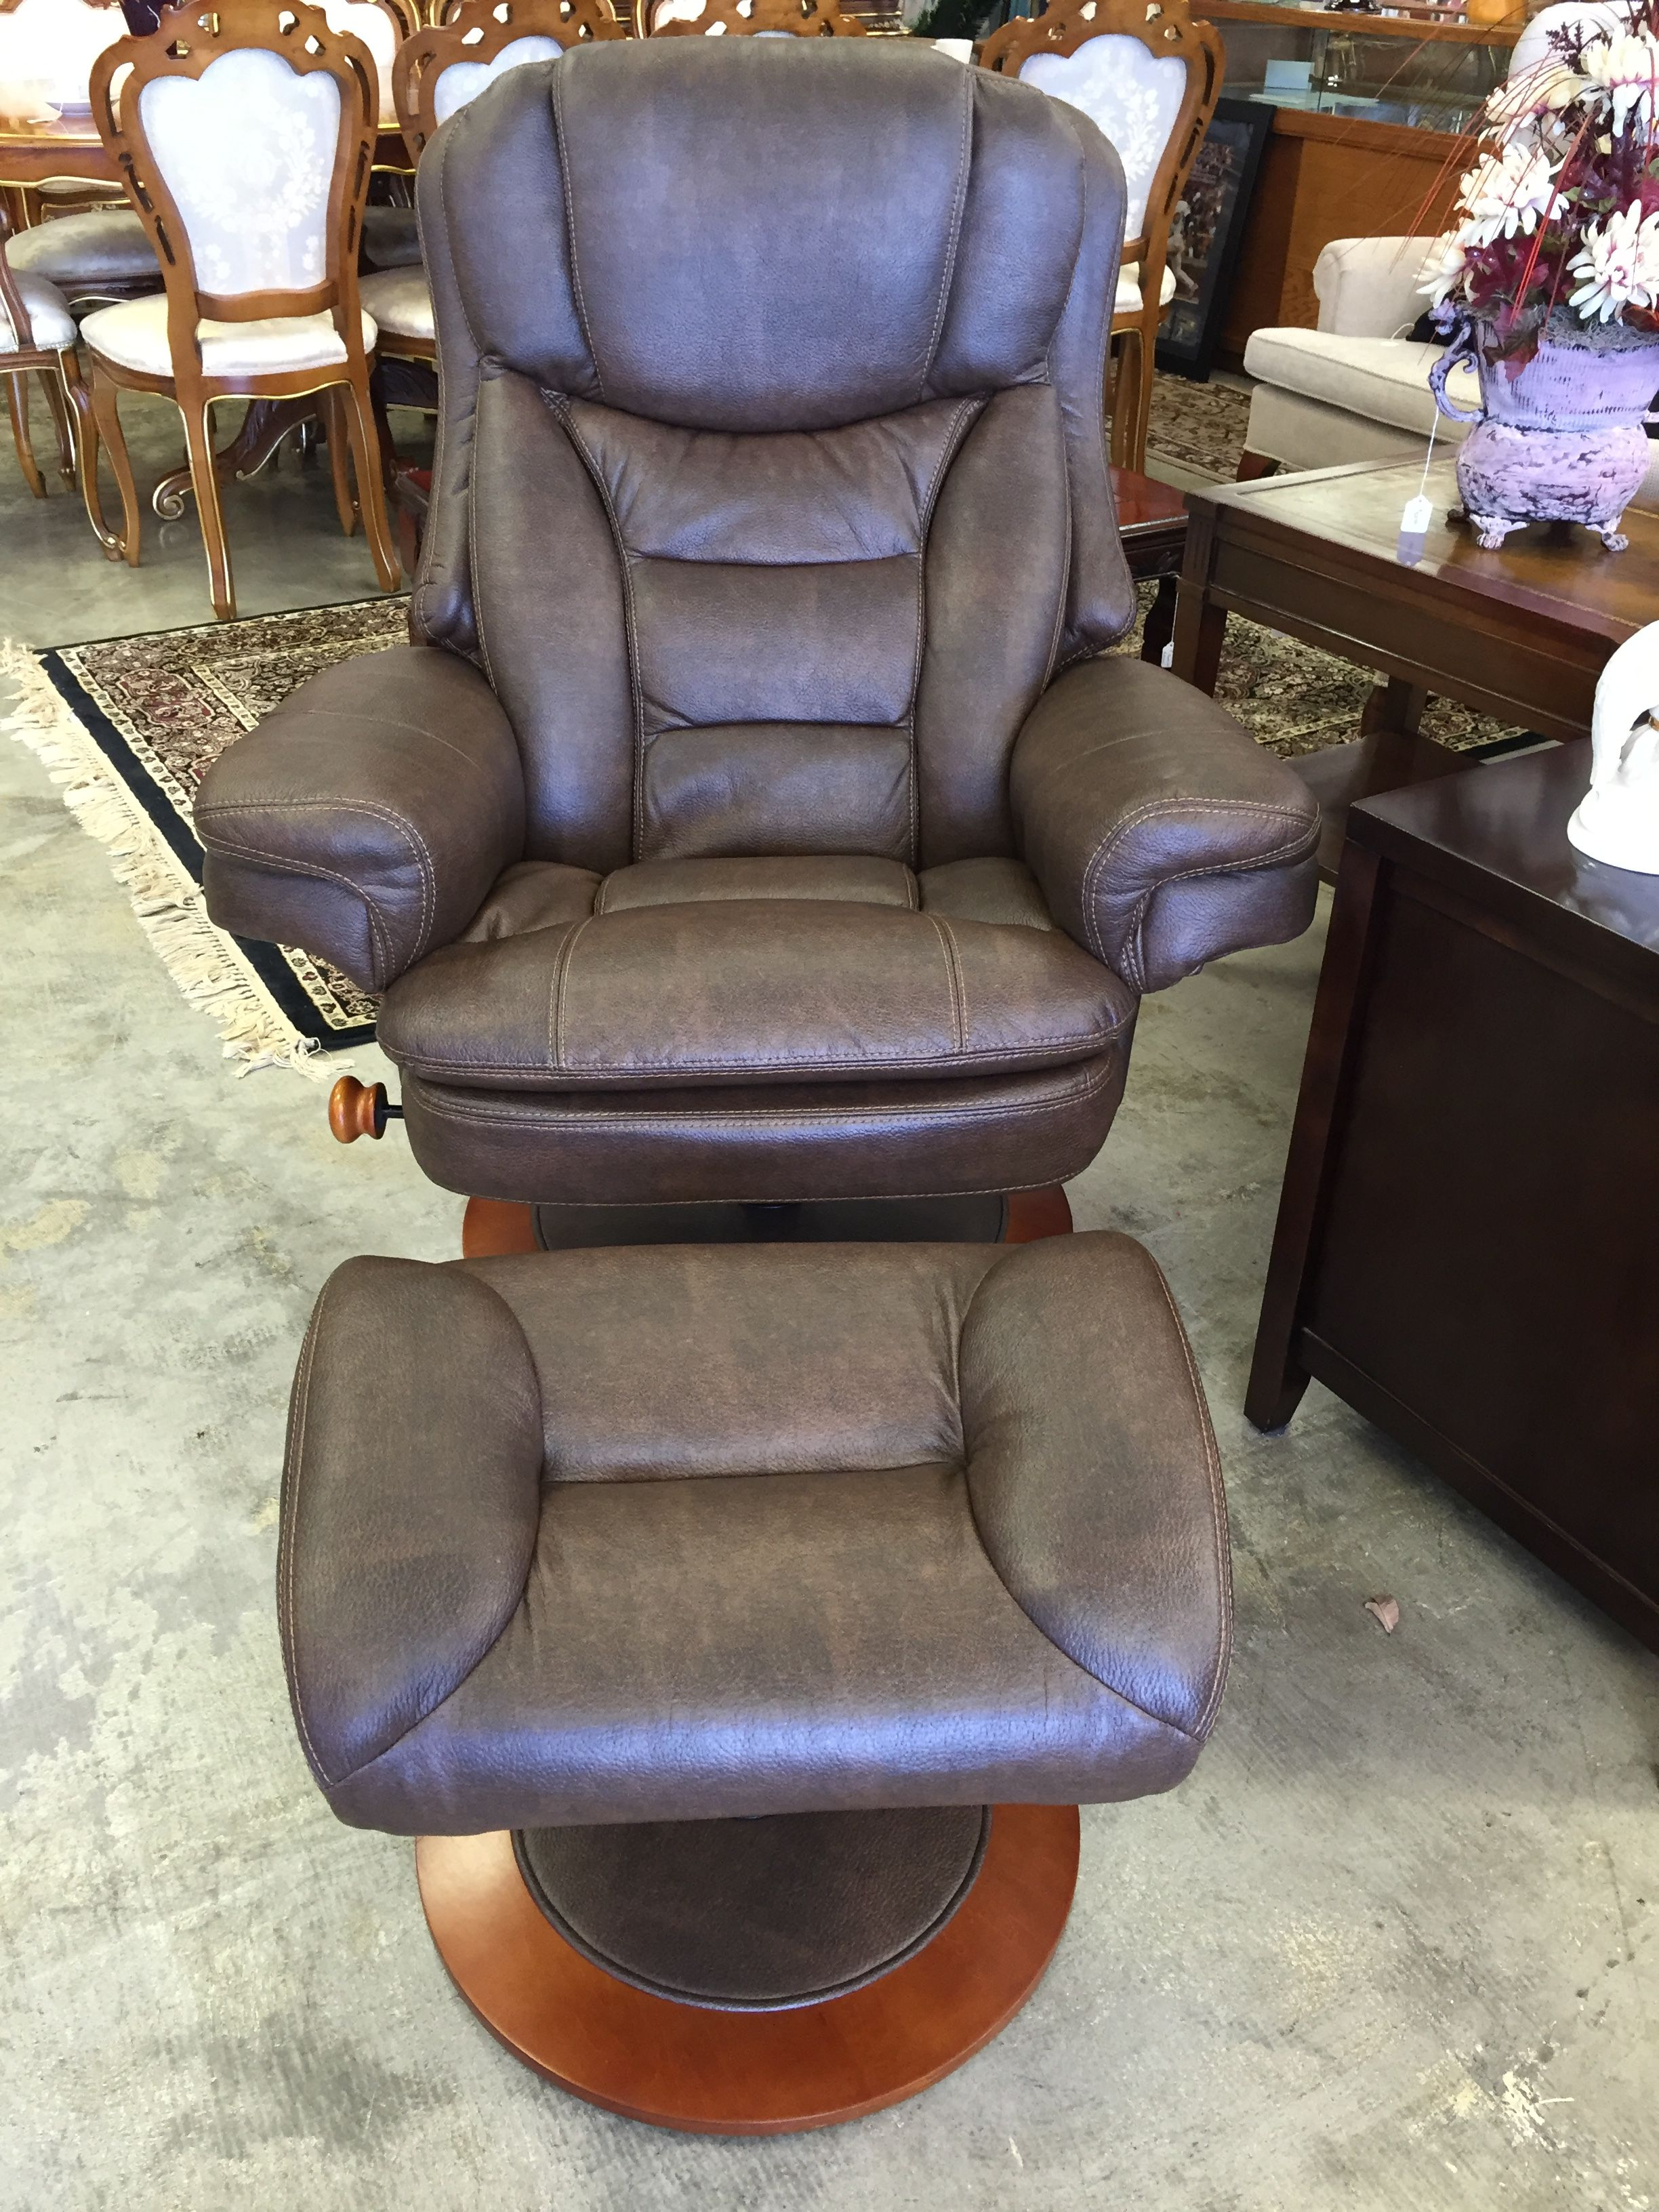 Admirable Close To Brand New Macmot Brute Swivel Toast Chair And Caraccident5 Cool Chair Designs And Ideas Caraccident5Info